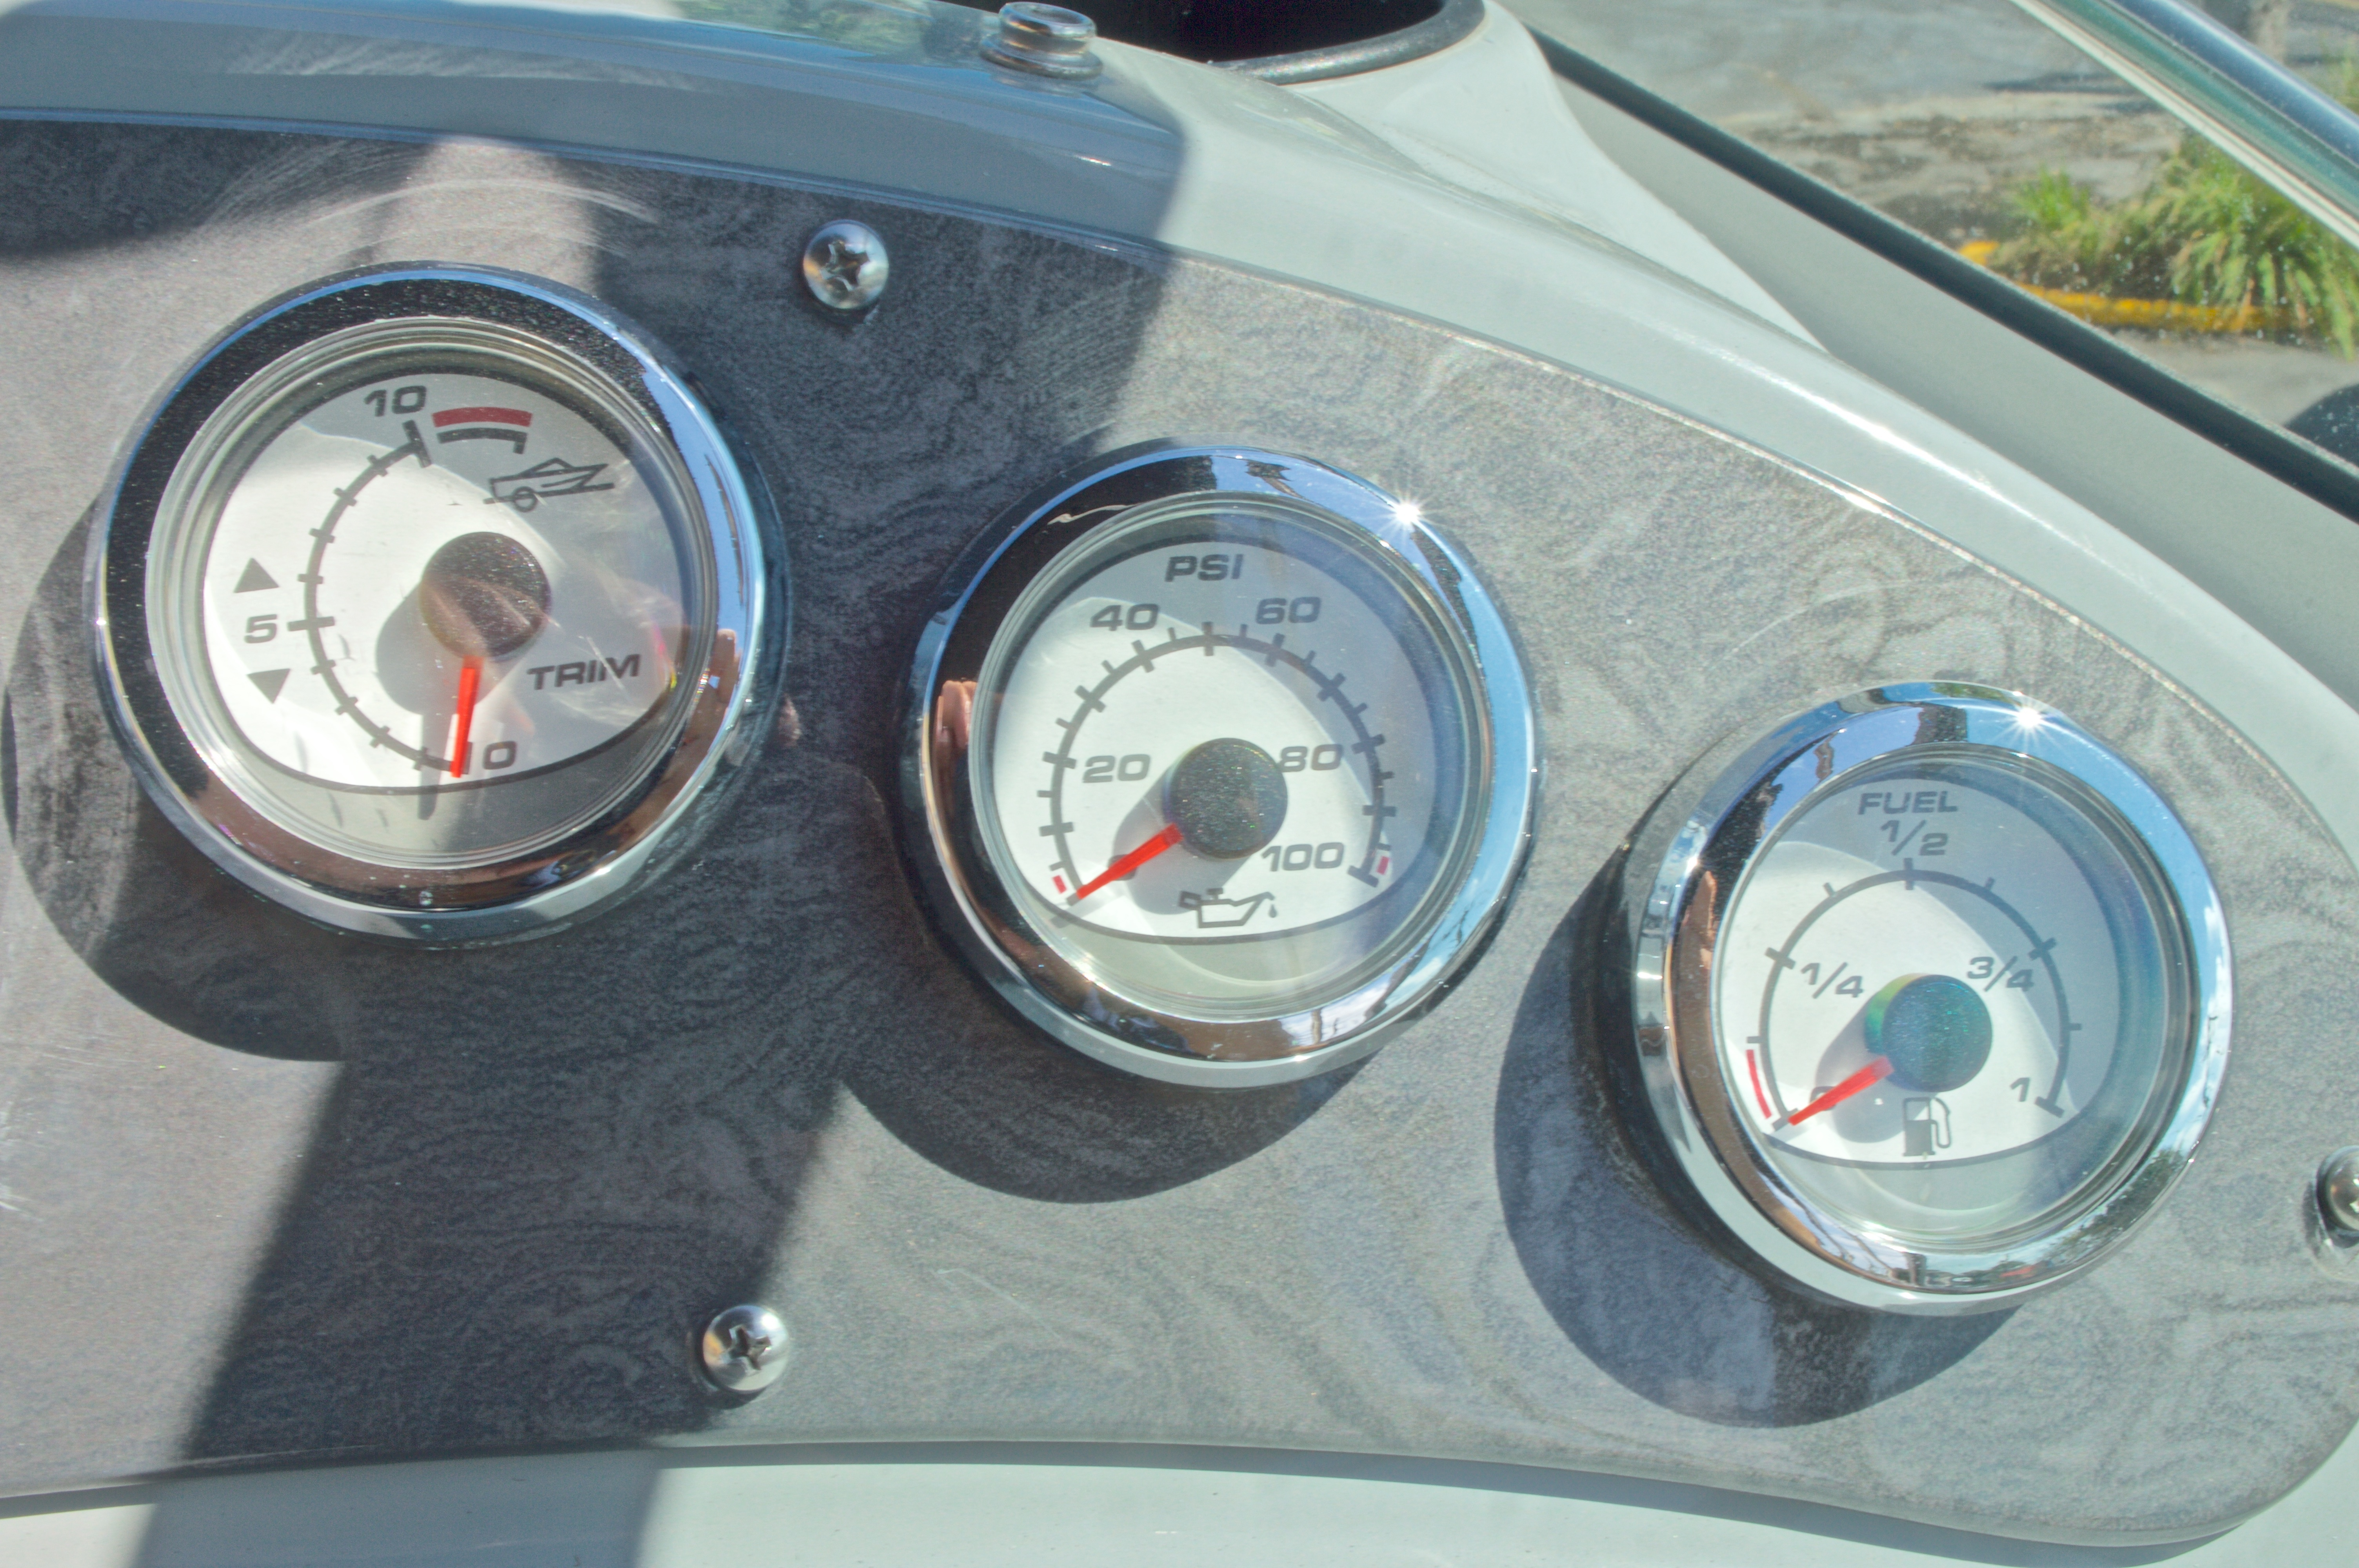 Thumbnail 31 for Used 2007 Maxum 2400 SE boat for sale in West Palm Beach, FL